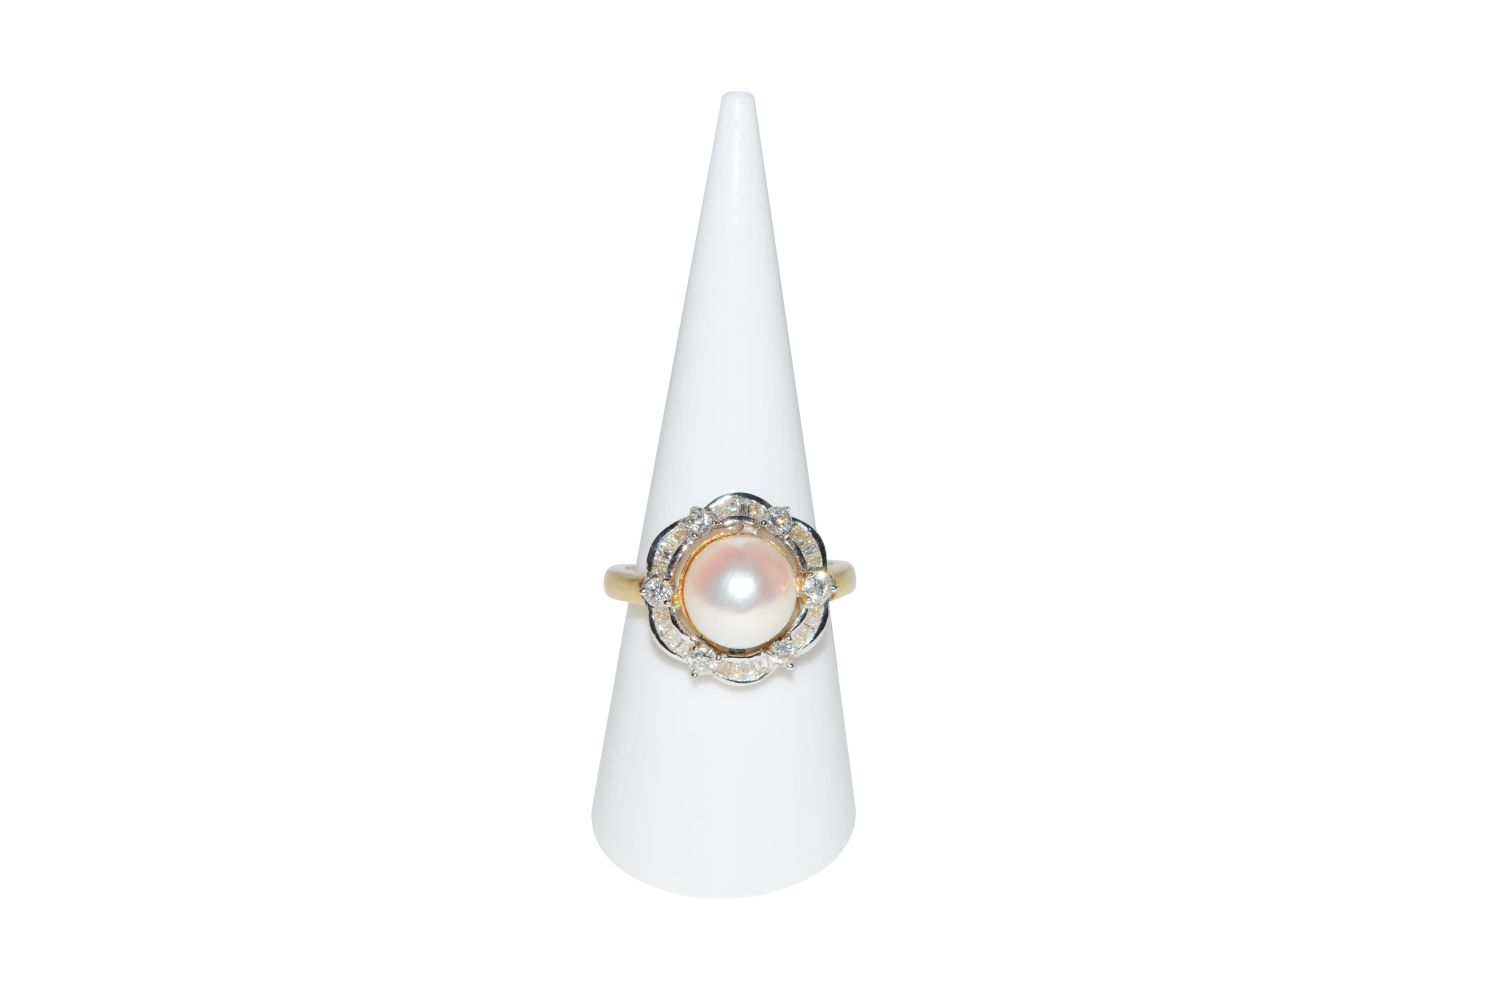 #89 Brilliant ring with South Sea pearl | Brillantring mit Südseeperle Image